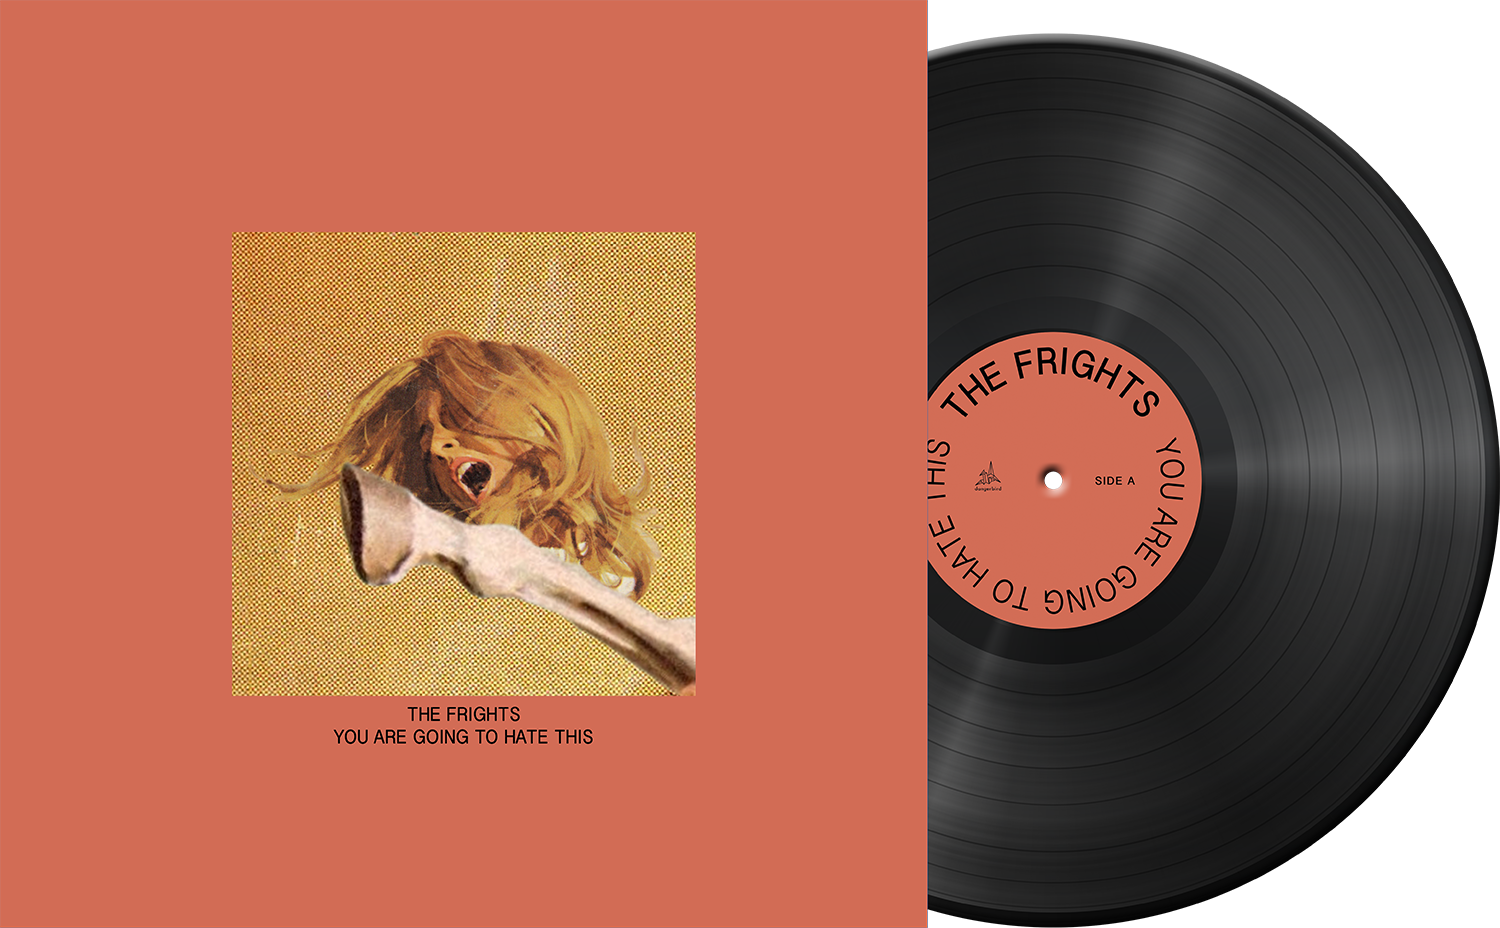 The Frights - You Are Going To Hate This - Black Vinyl LP